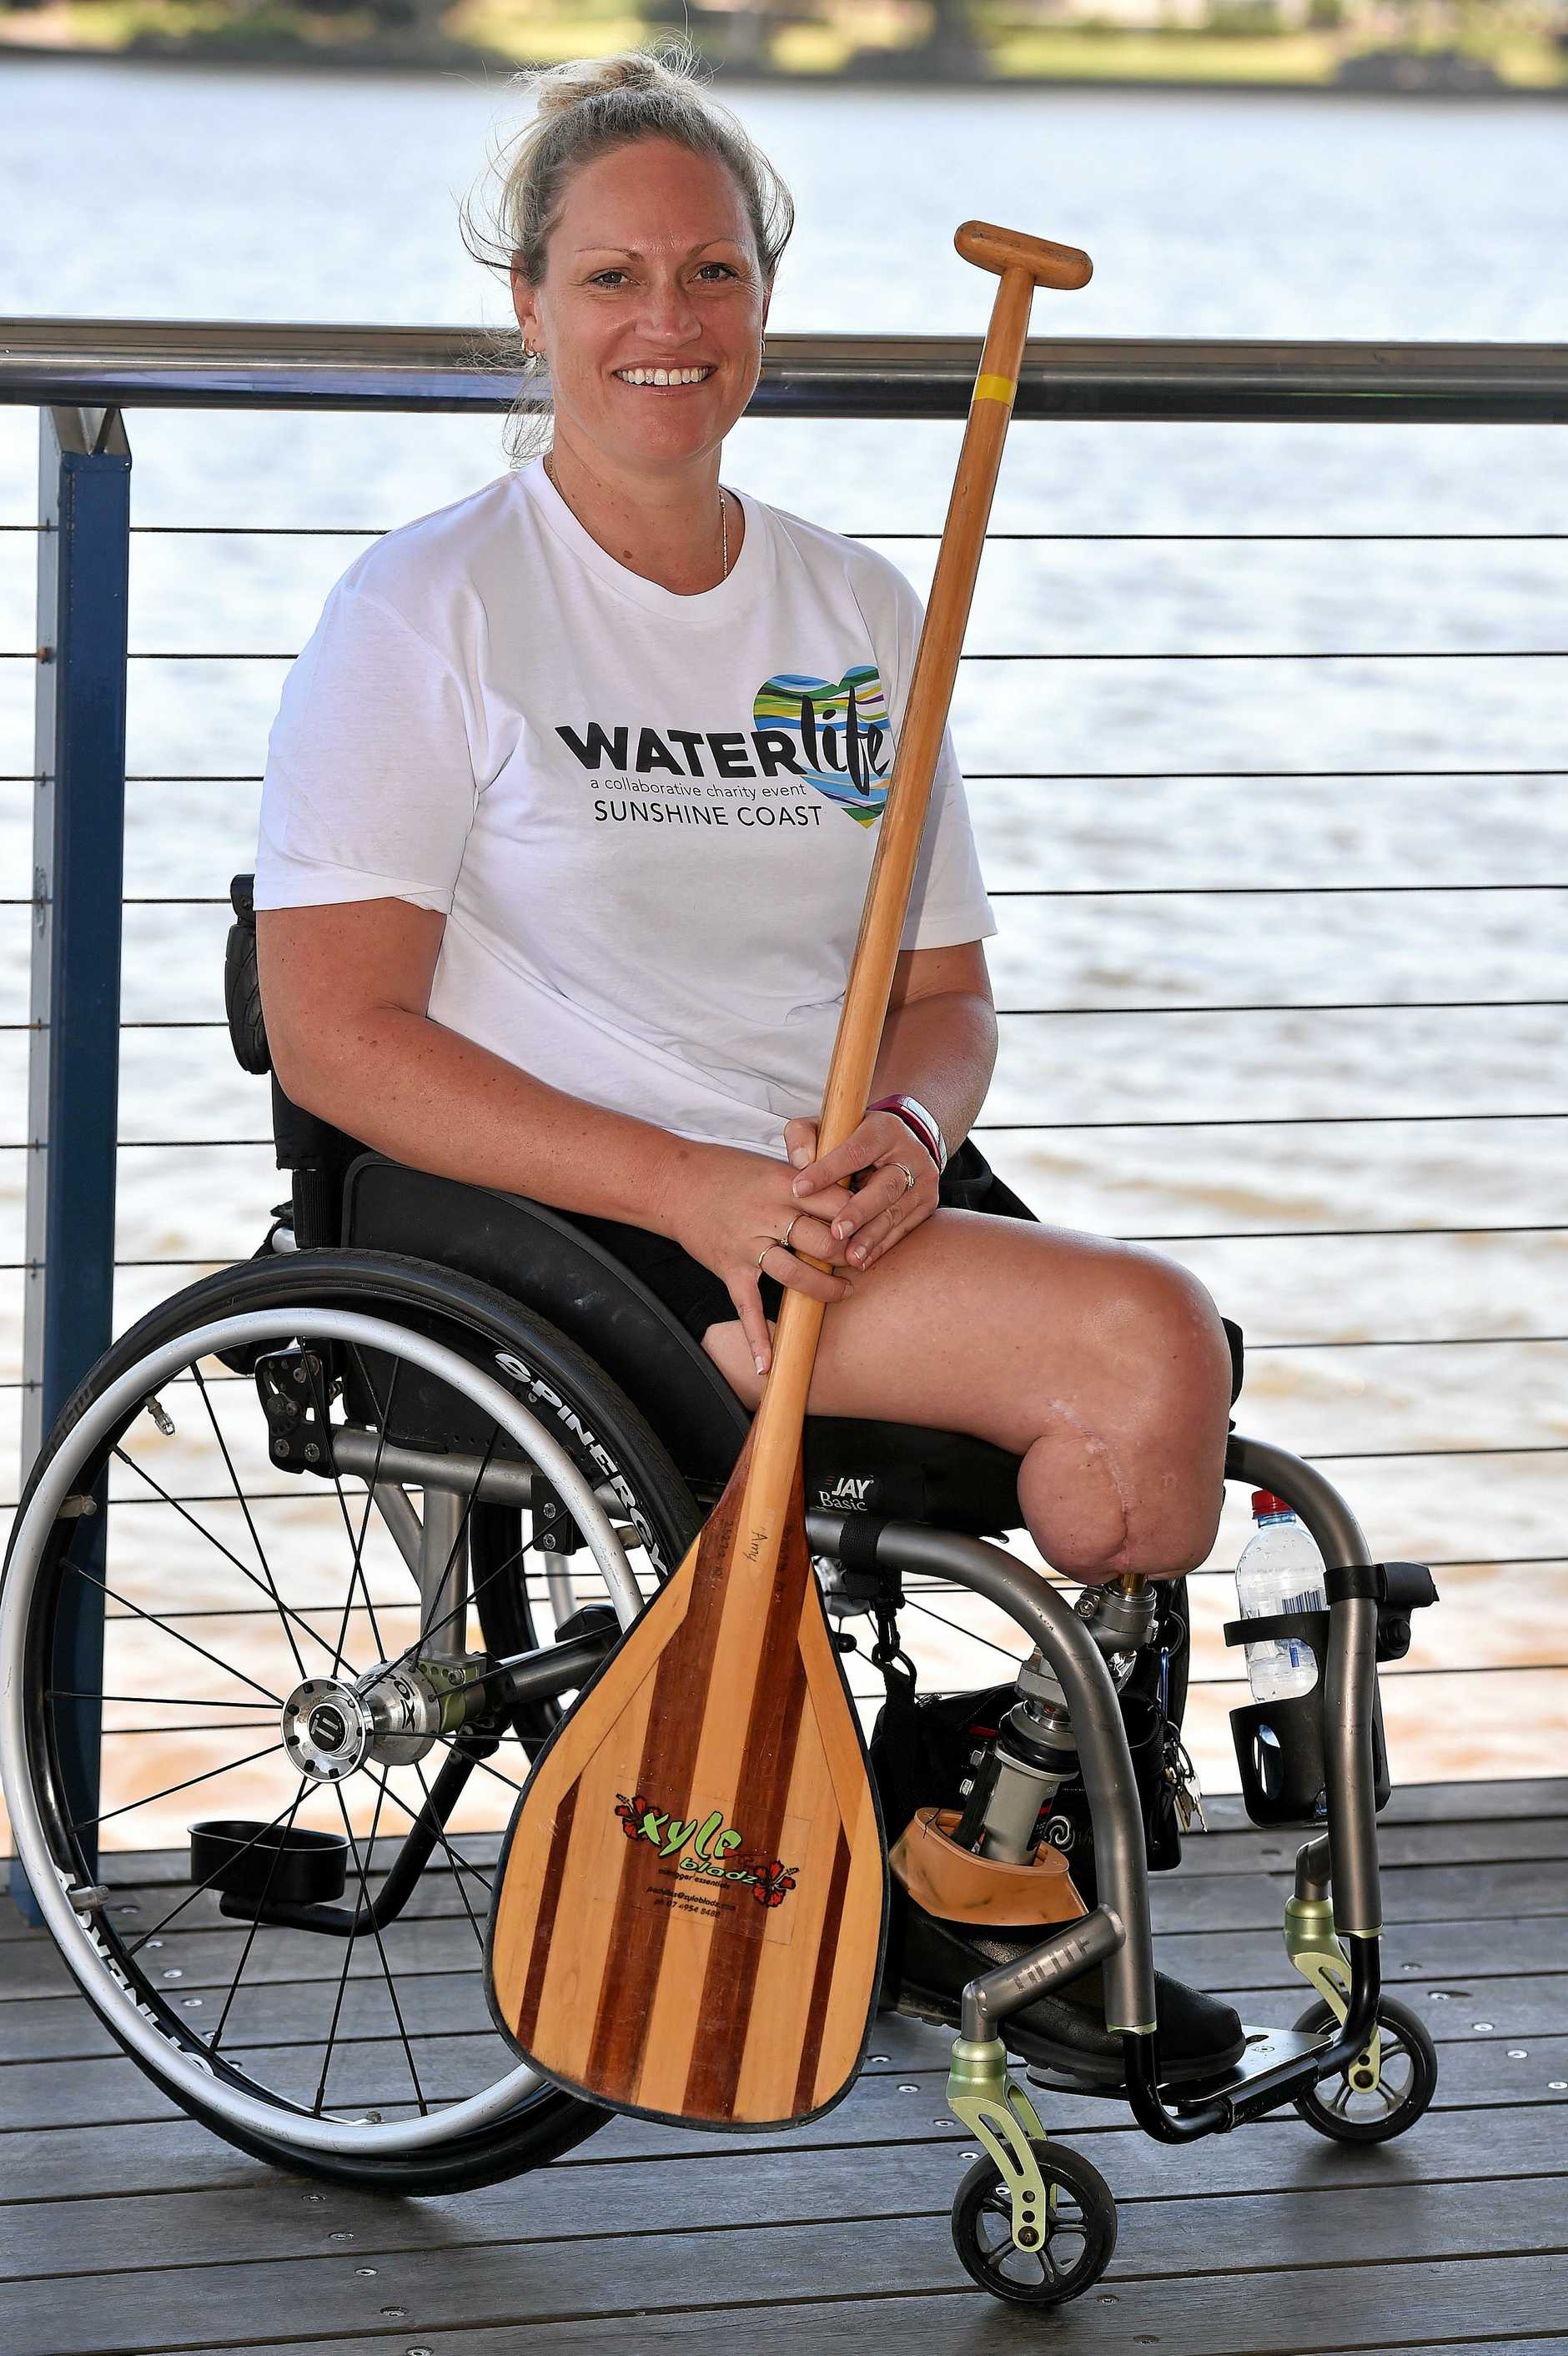 Shona Muckert took up outrigger canoeing after an accident saw her lose both legs.